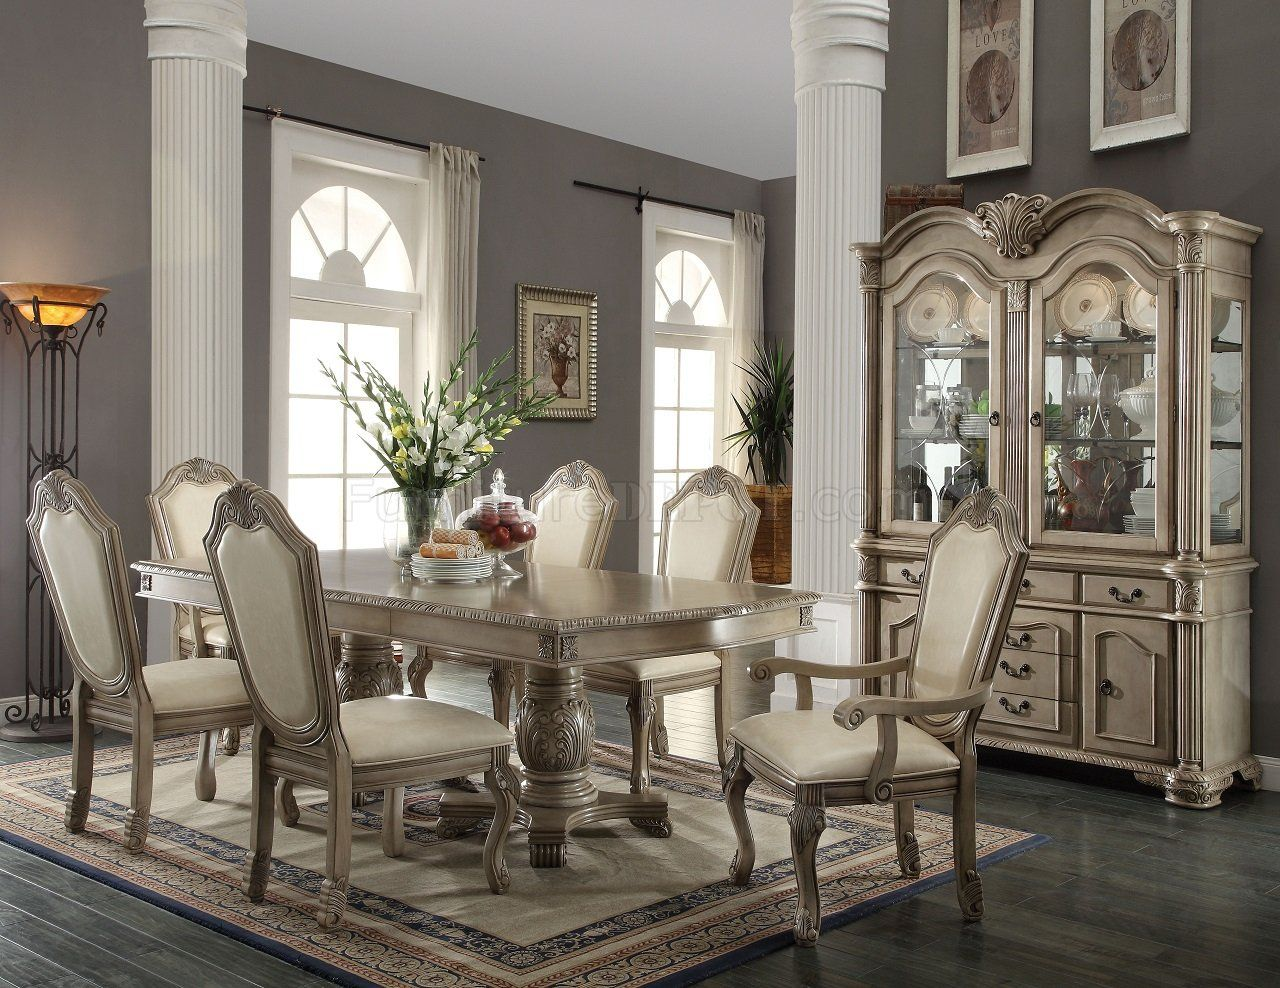 traditional dining room set. Dining Room Traditional Sets Have White Table 6  Chairs Front Wood Cupboard Above Laminate Floor Around Grey Painted Wall With Formal sets Reasons Why Tables Offer More